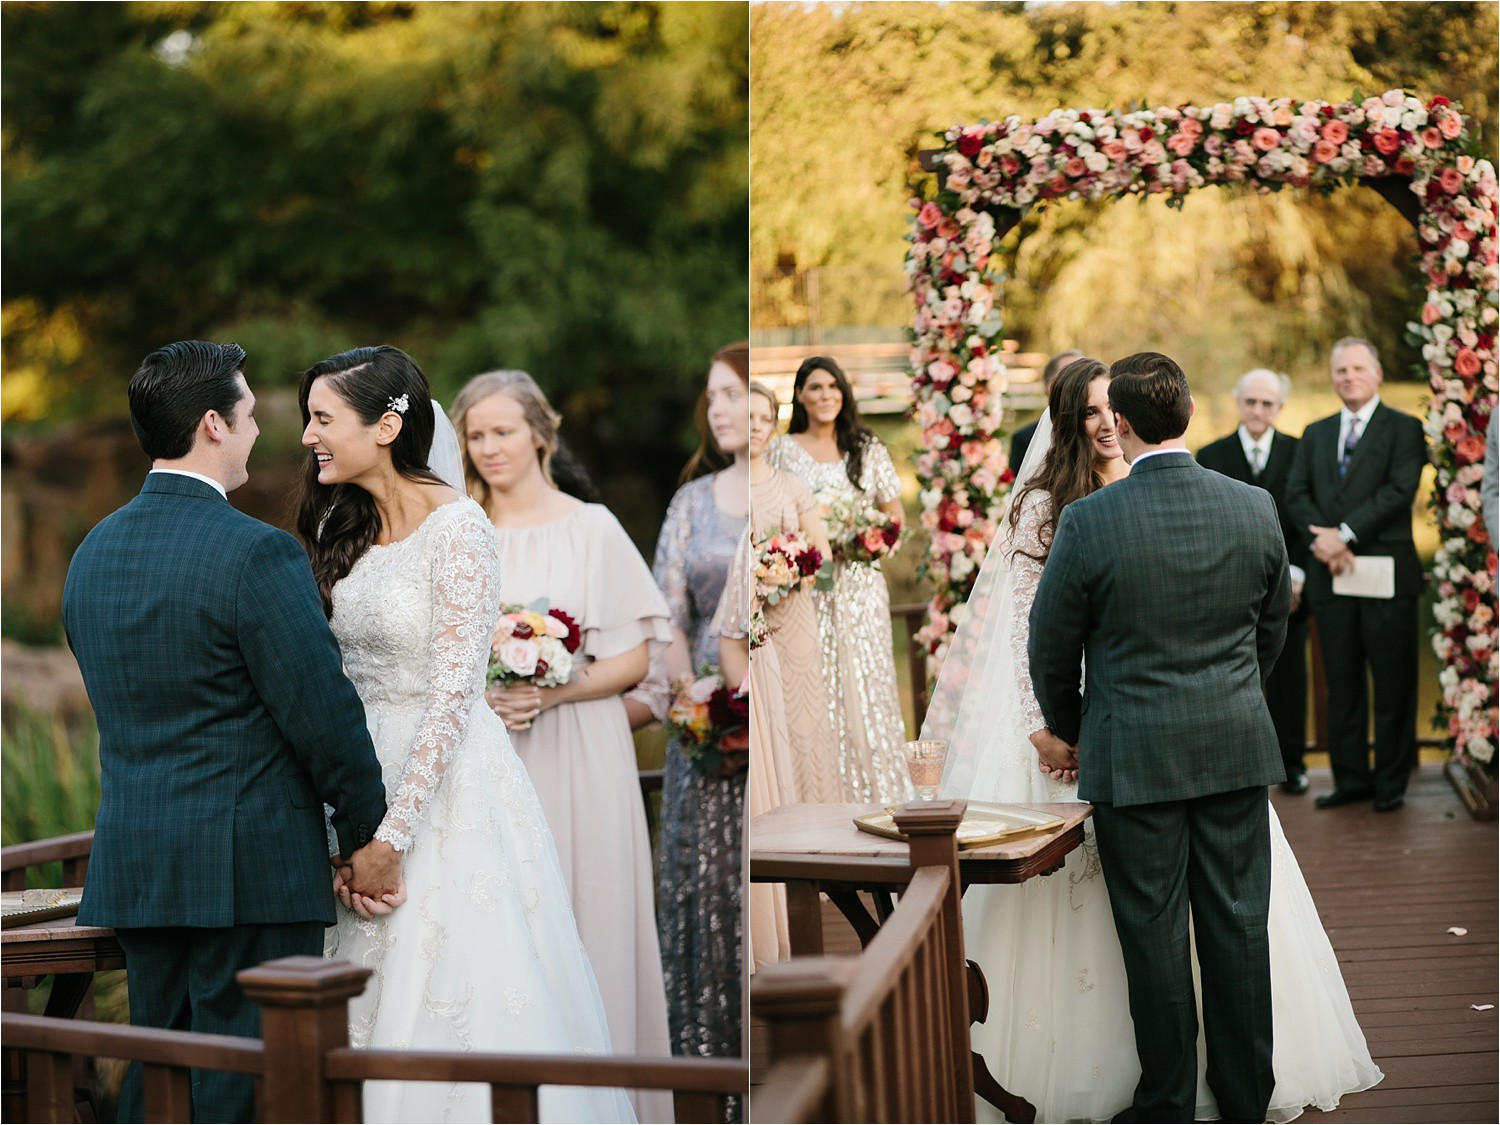 an-elegant-family-ranch-wedding-on-lake-worth-with-burgundy-apricot-and-blush-inspired-decorations-by-north-texas-wedding-photographer-rachel-meagan-photography-_-31